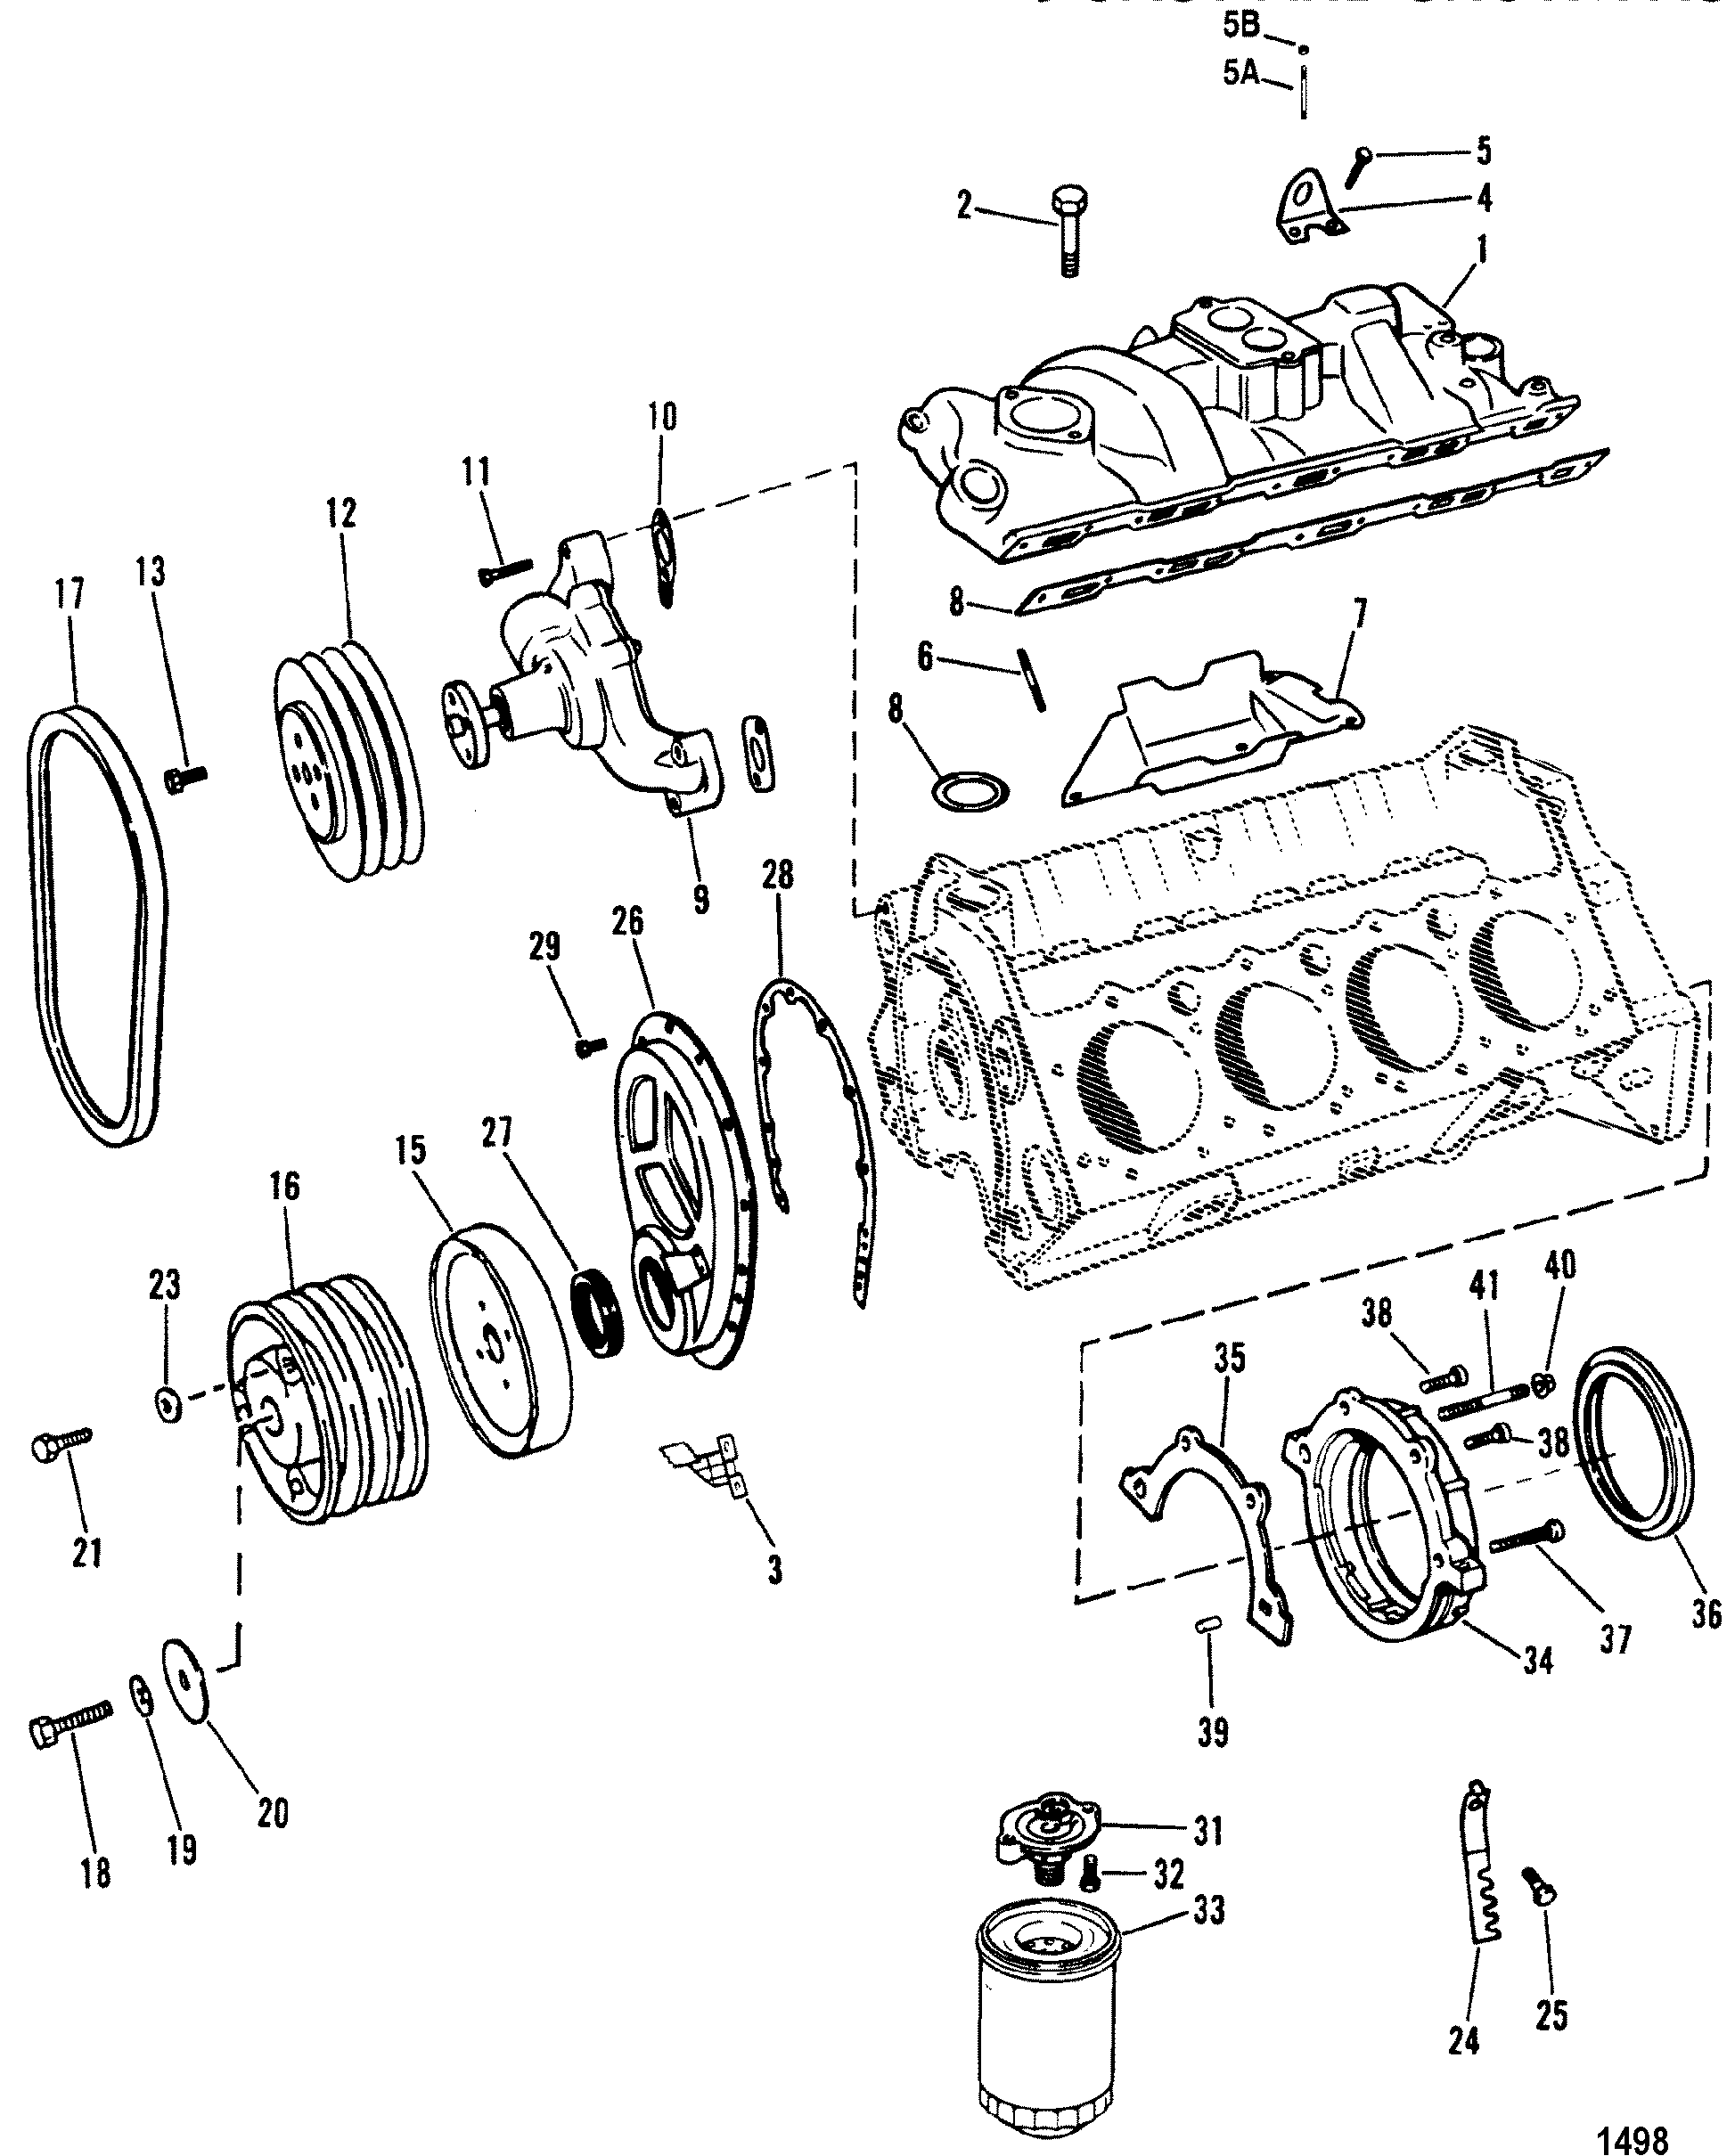 gm 350 intake manifold to engine diagram wiring diagram K1500 Suspension Diagram cp performance intake manifold and front cover design ii 5 7l gm 350 v